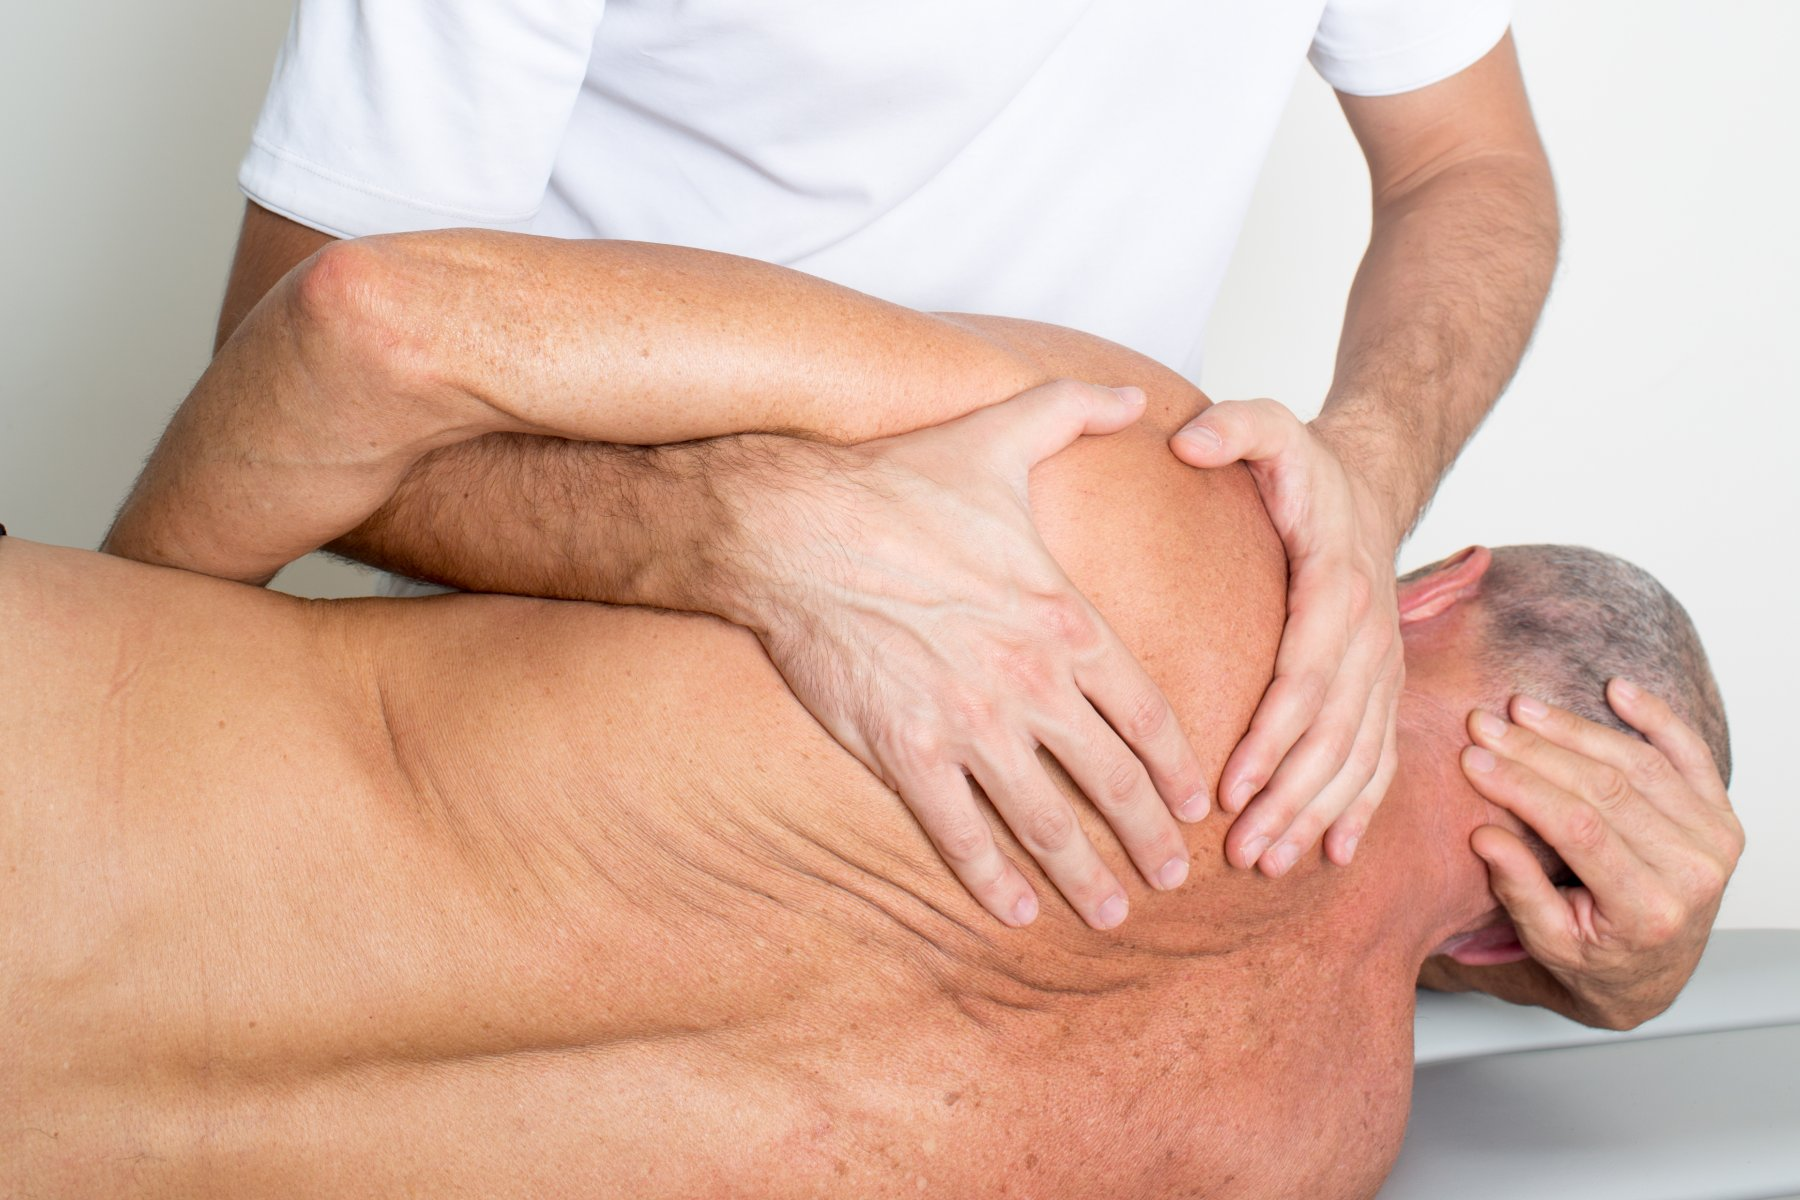 Tell me about myofascial release therapy as a treatment for